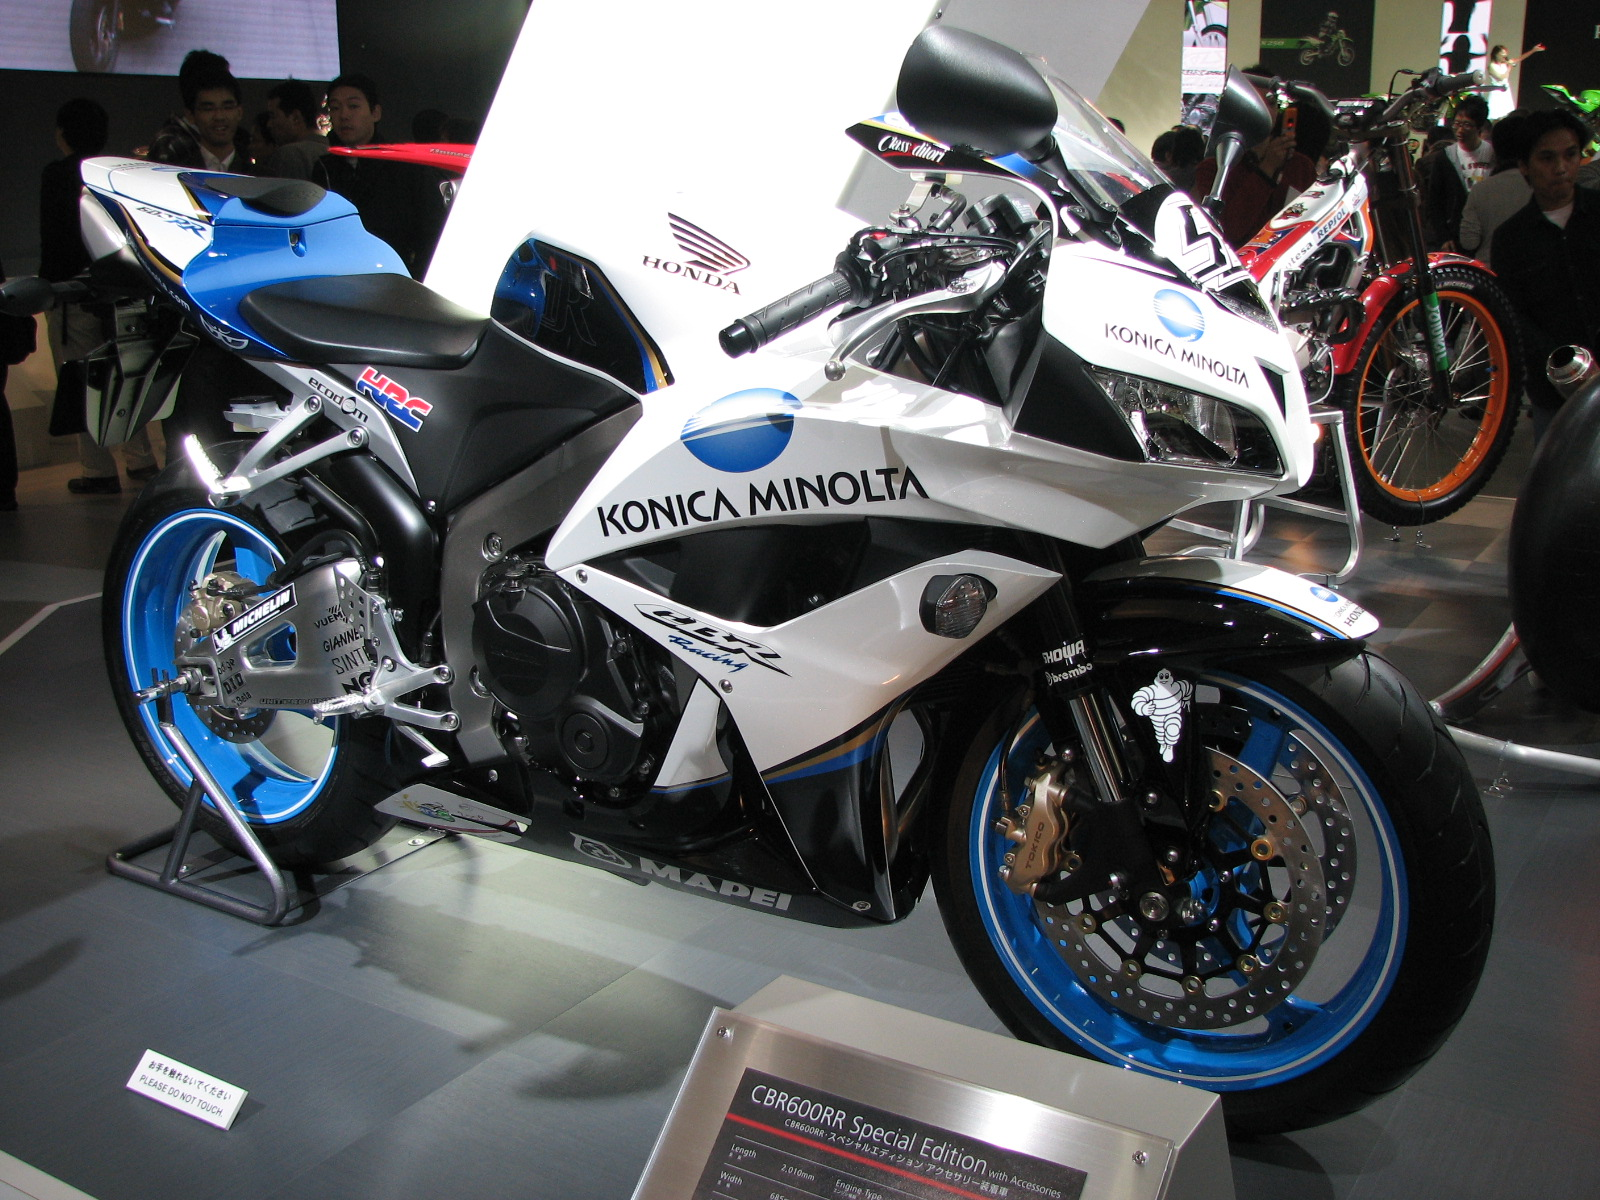 Honda Cbr Limited Edition on 2010 kawasaki ninja zx 14